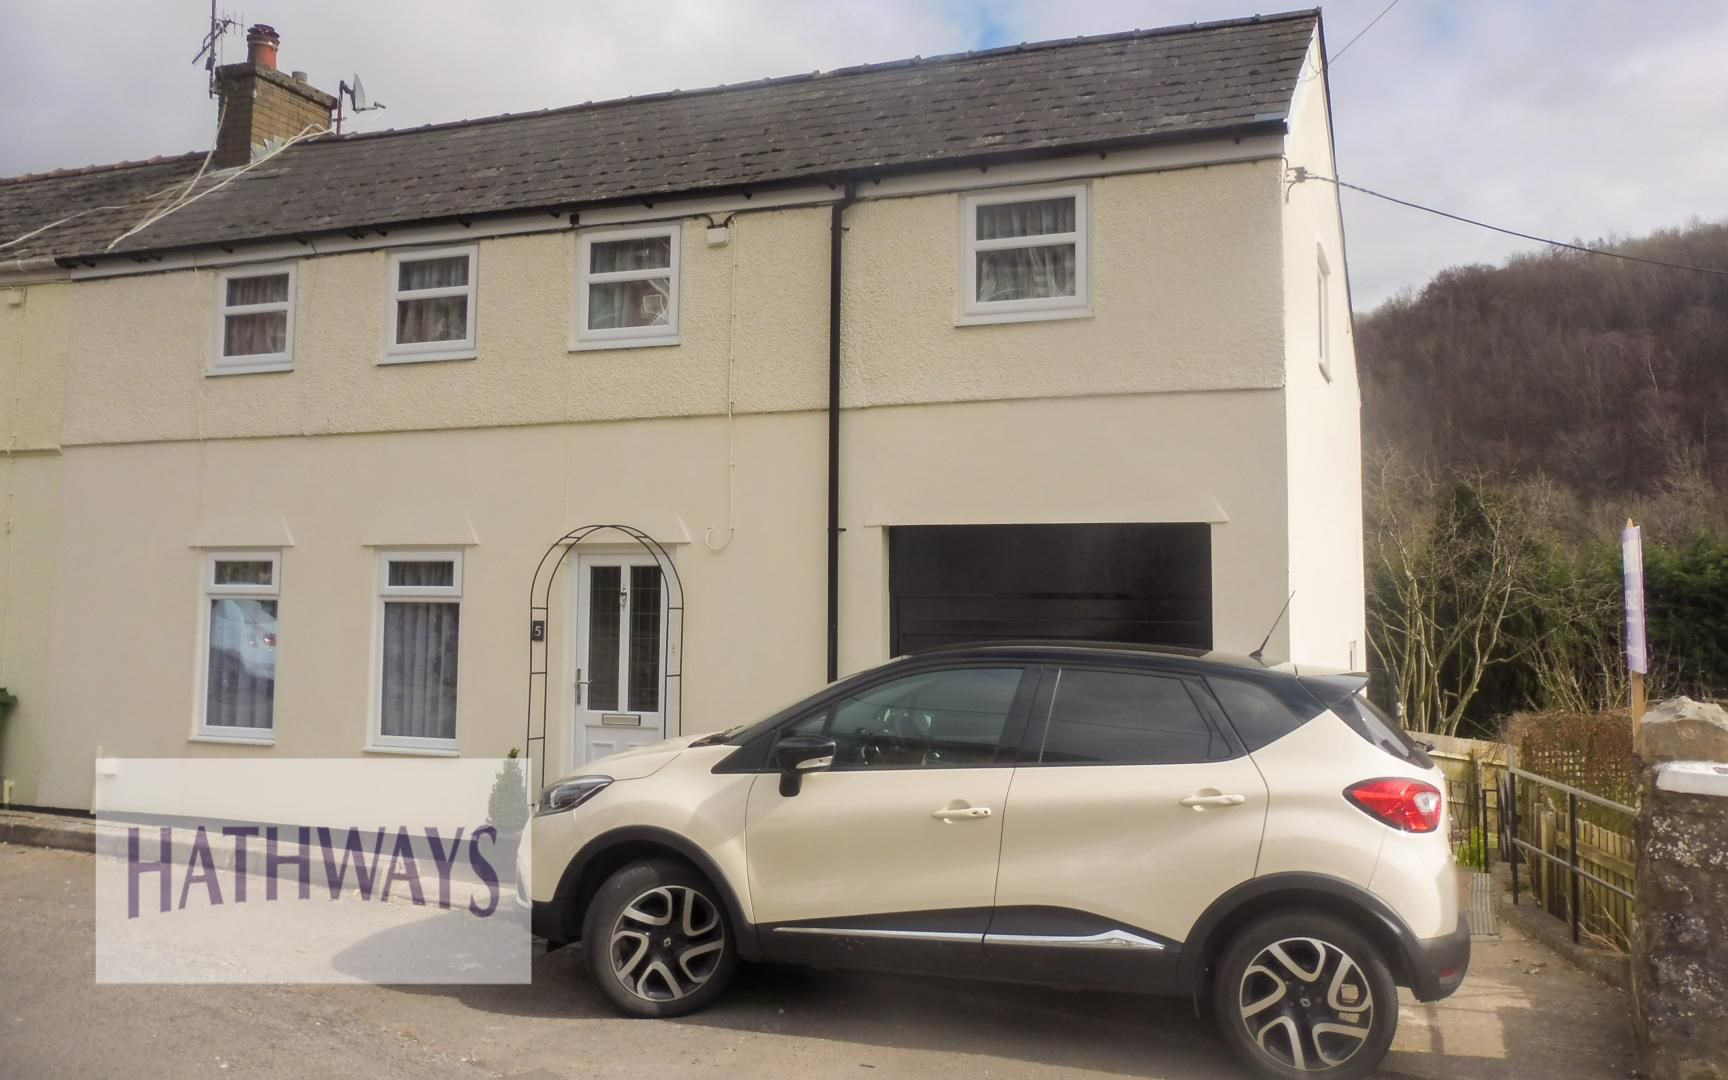 3 bed house for sale in Ffrwd Road, NP4